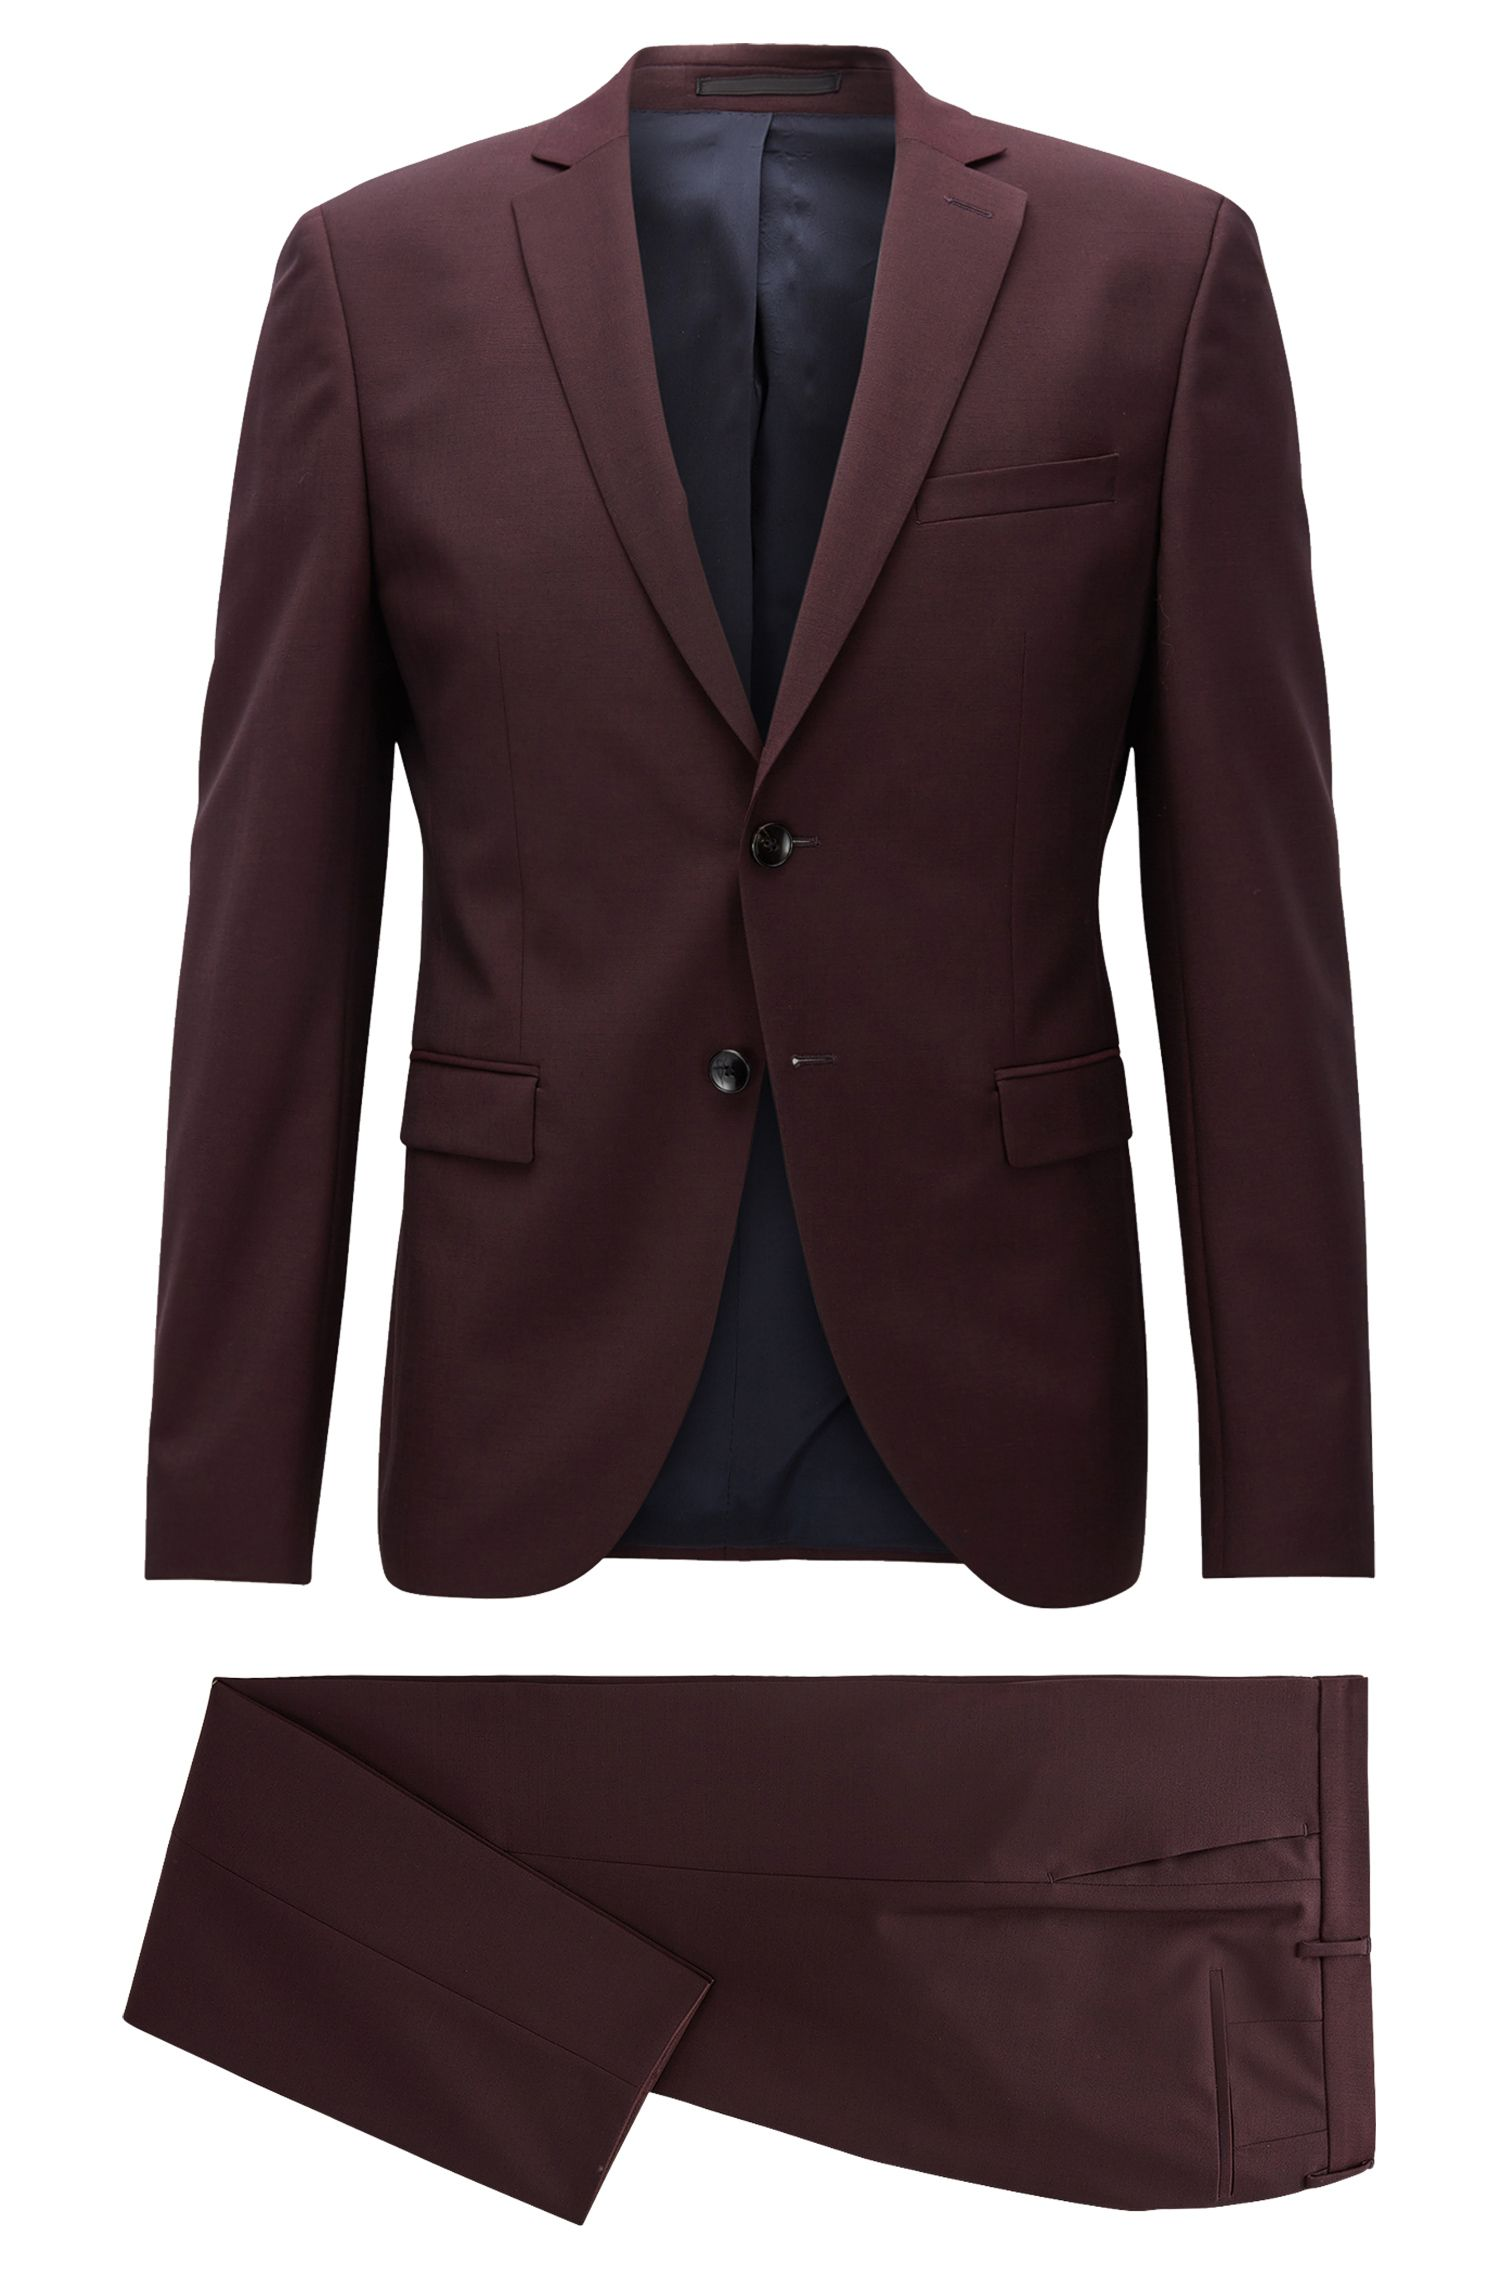 Virgin Wool Mohair Suit with Stretch Tailoring, Extra Slim Fit | Reymond/Wenton